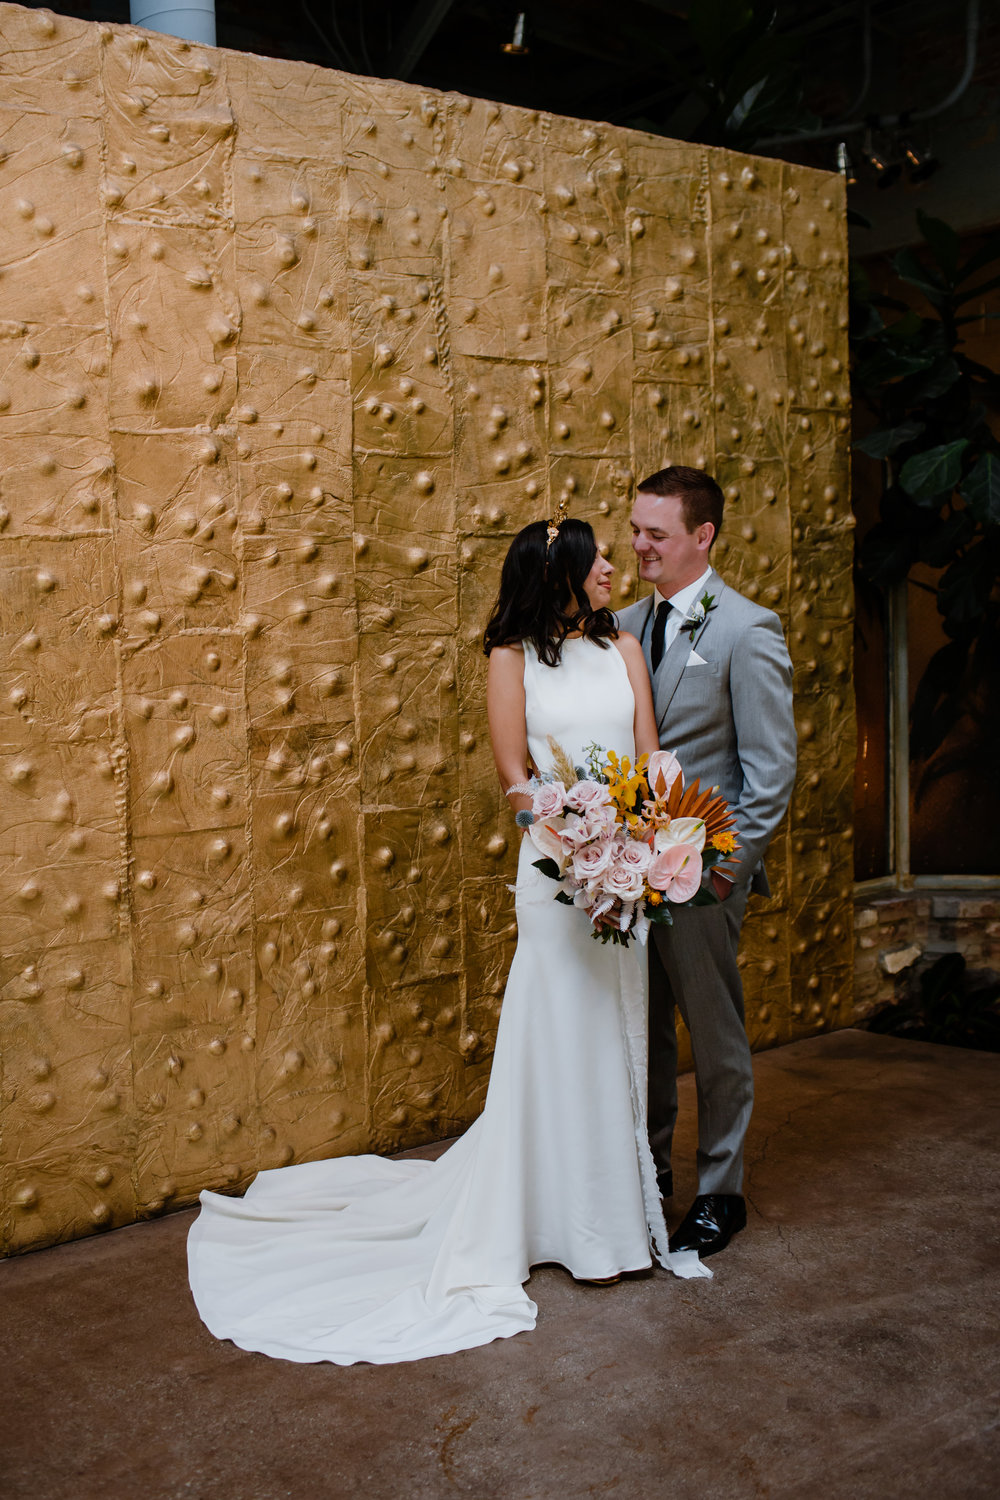 Sharon and Adam Downtown Los Angeles Arts District Wedding Millwick Venue - Eve Rox Photography-233.jpg